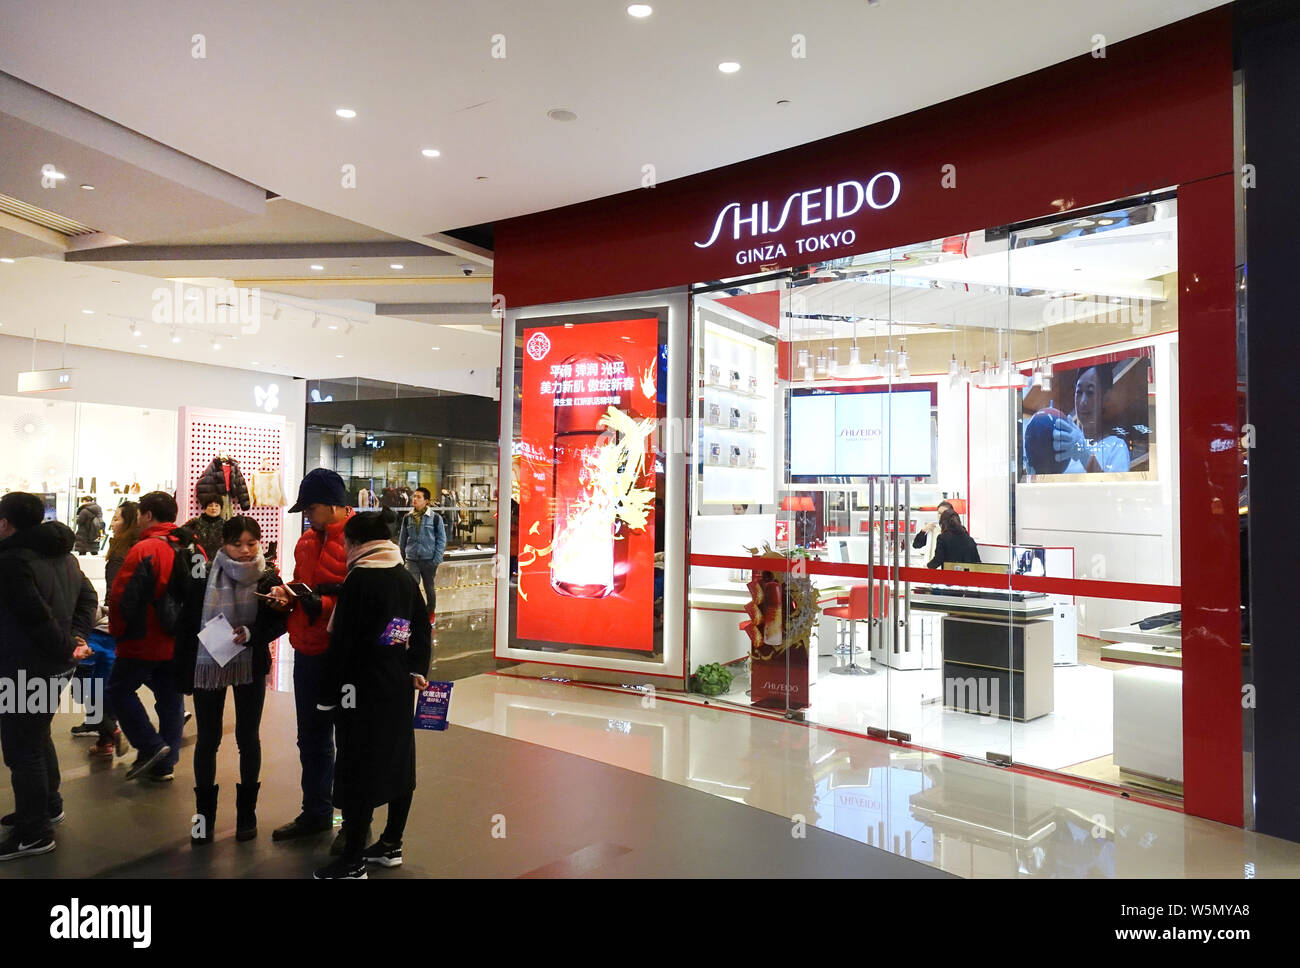 Shiseido Store Stock Photos & Shiseido Store Stock Images